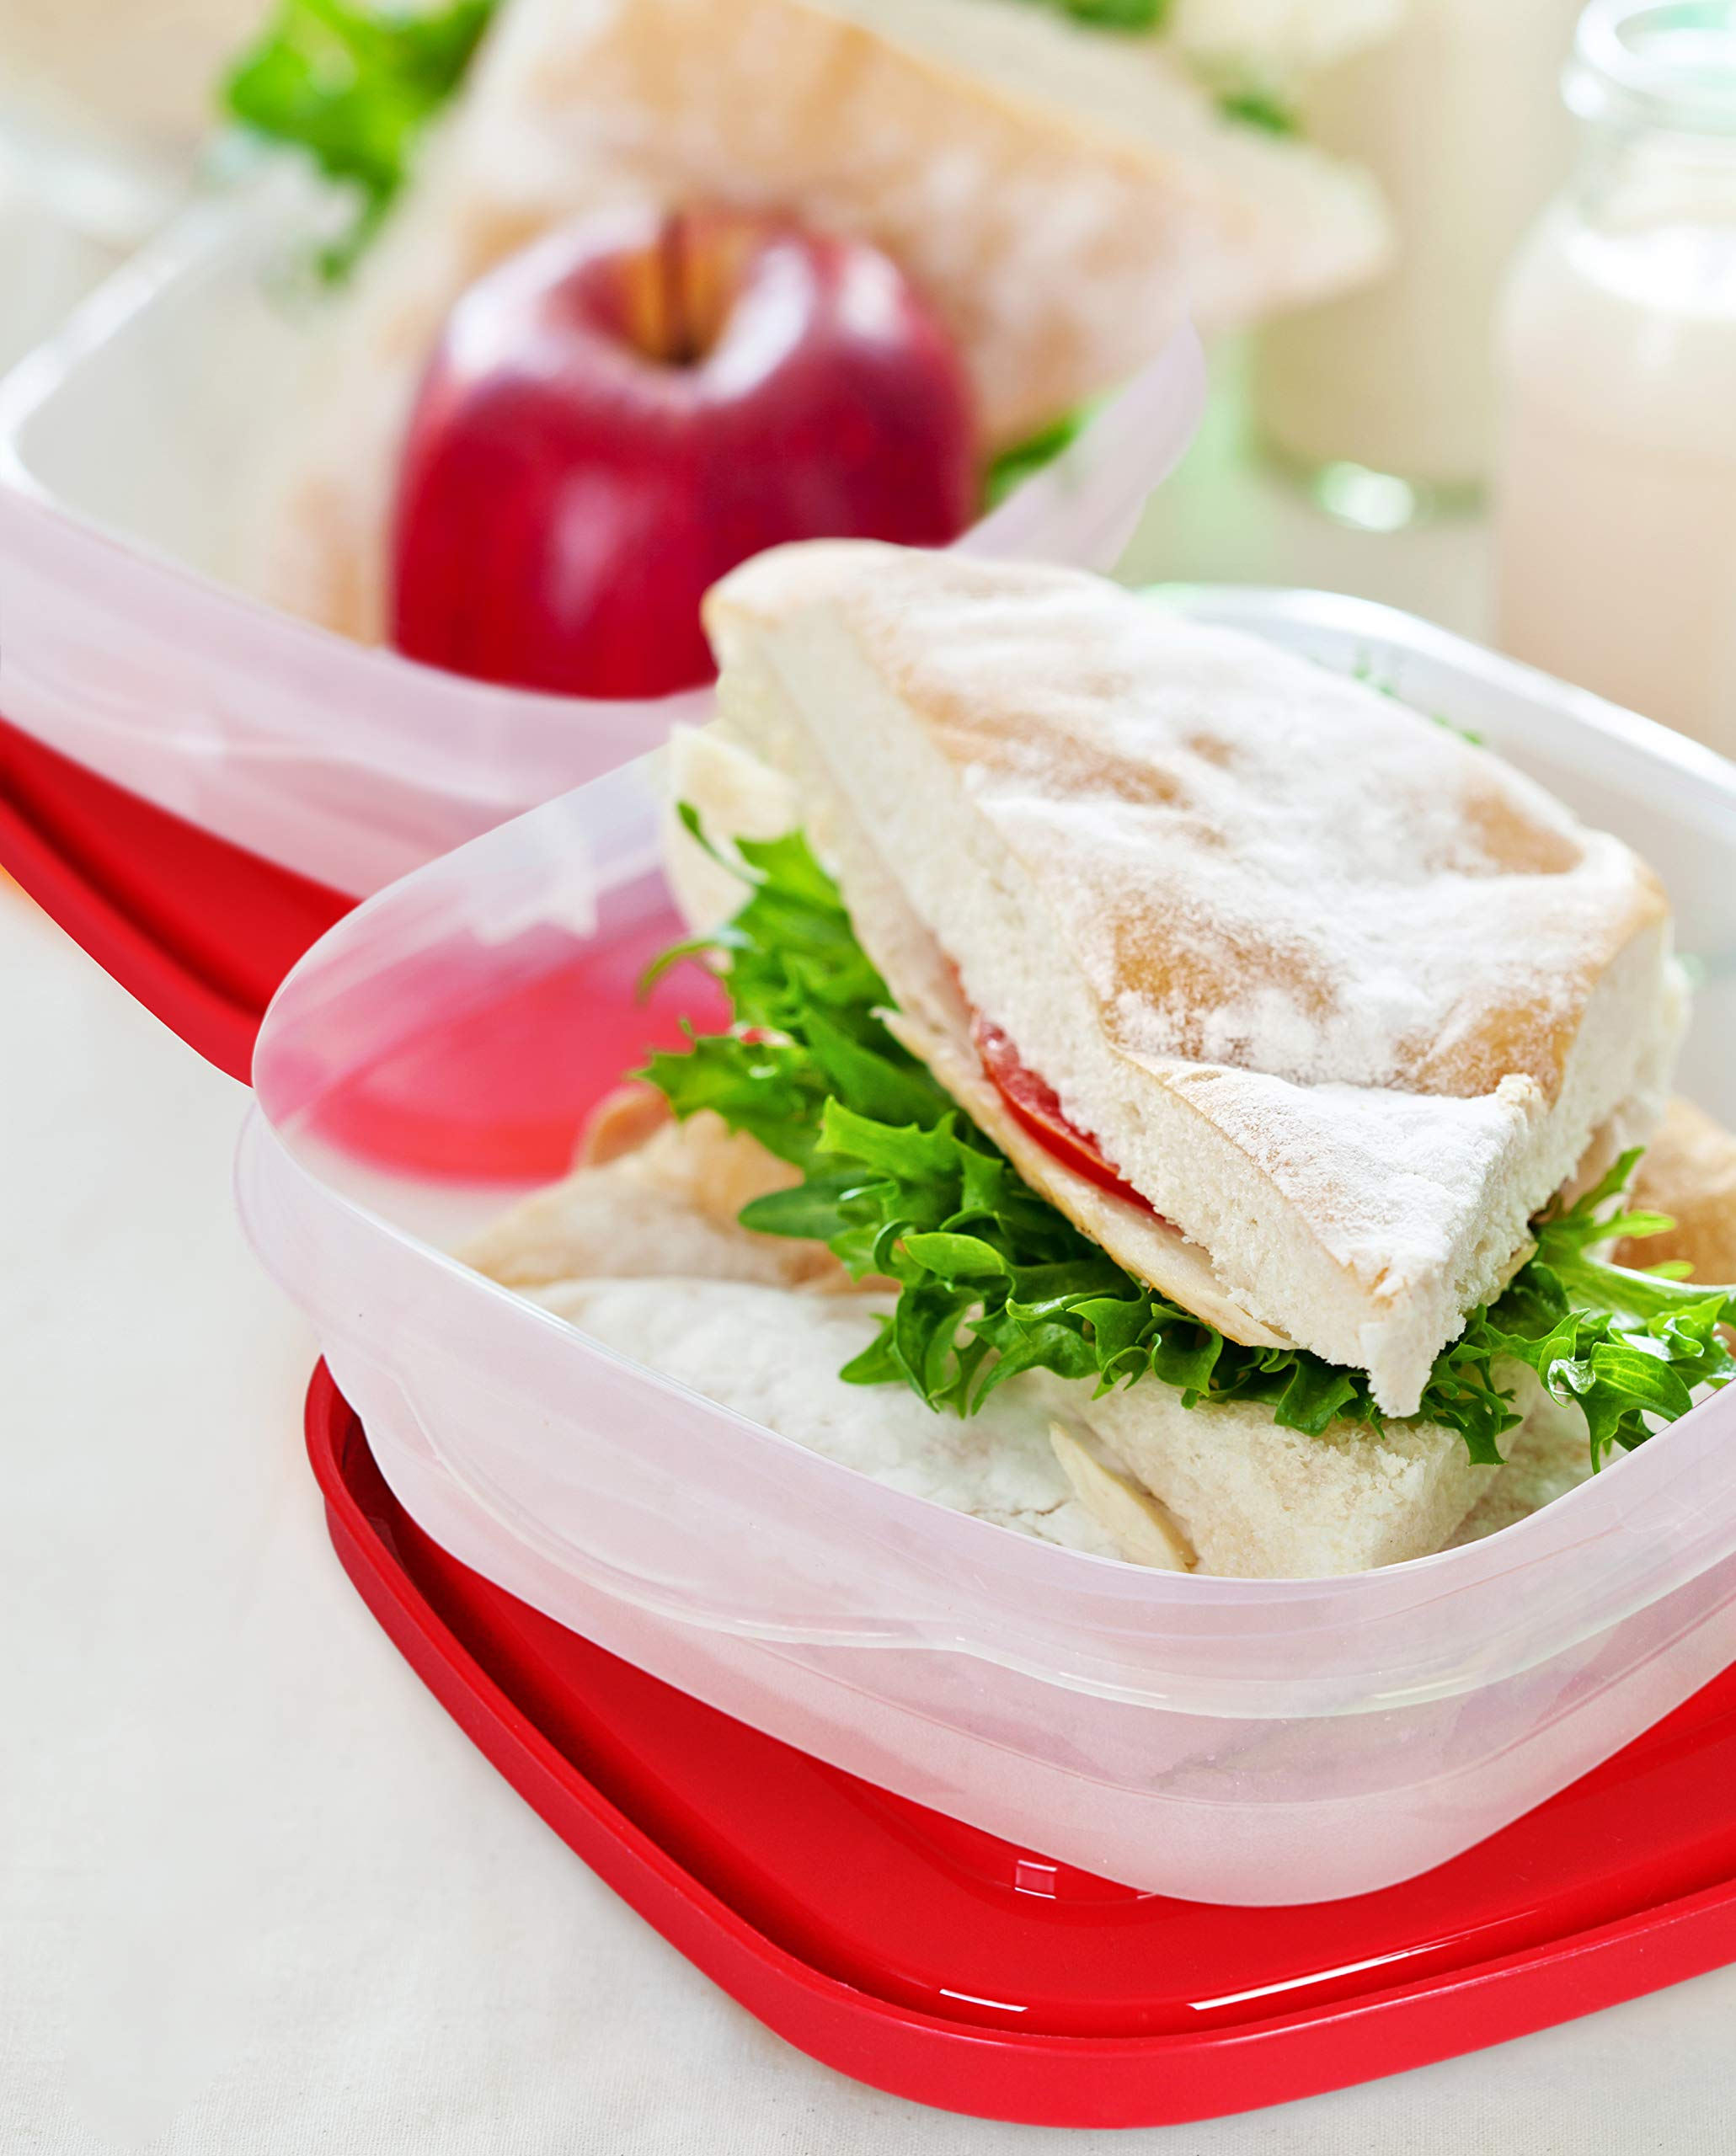 Utopia Kitchen Plastic Food Storage Containers with Lids [40 Pack] by Utopia Kitchen (Image #7)